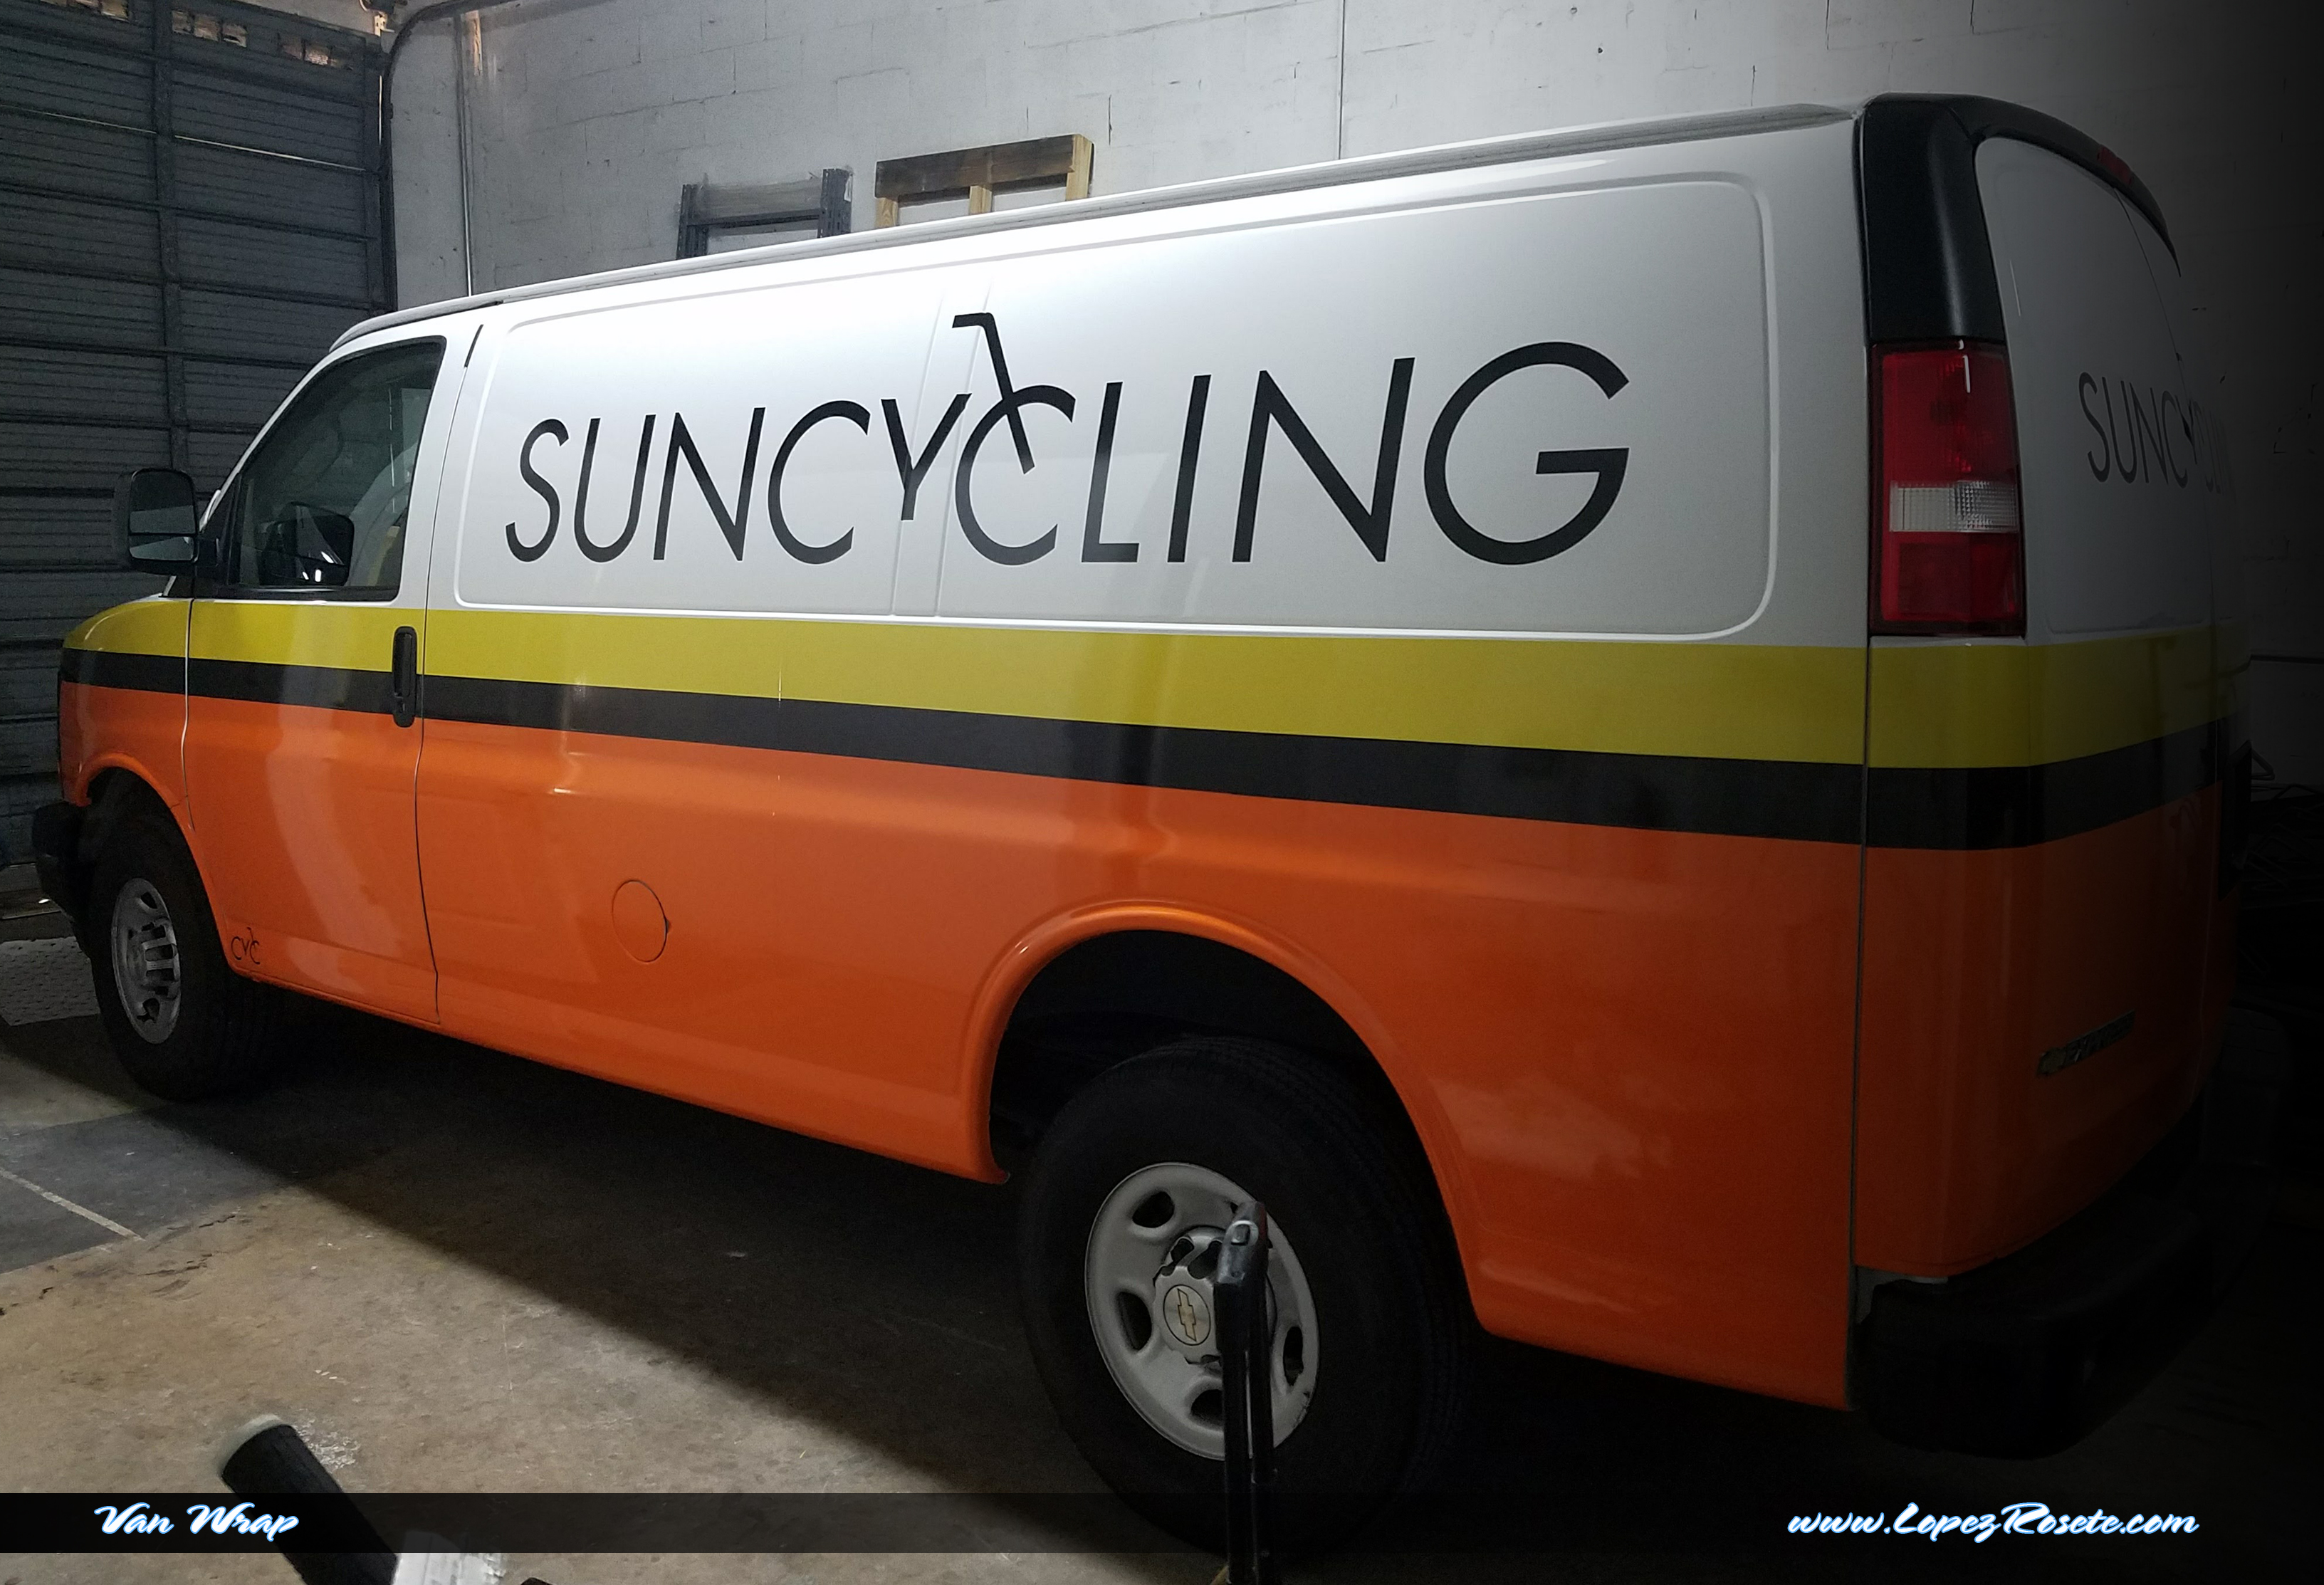 Suncycling